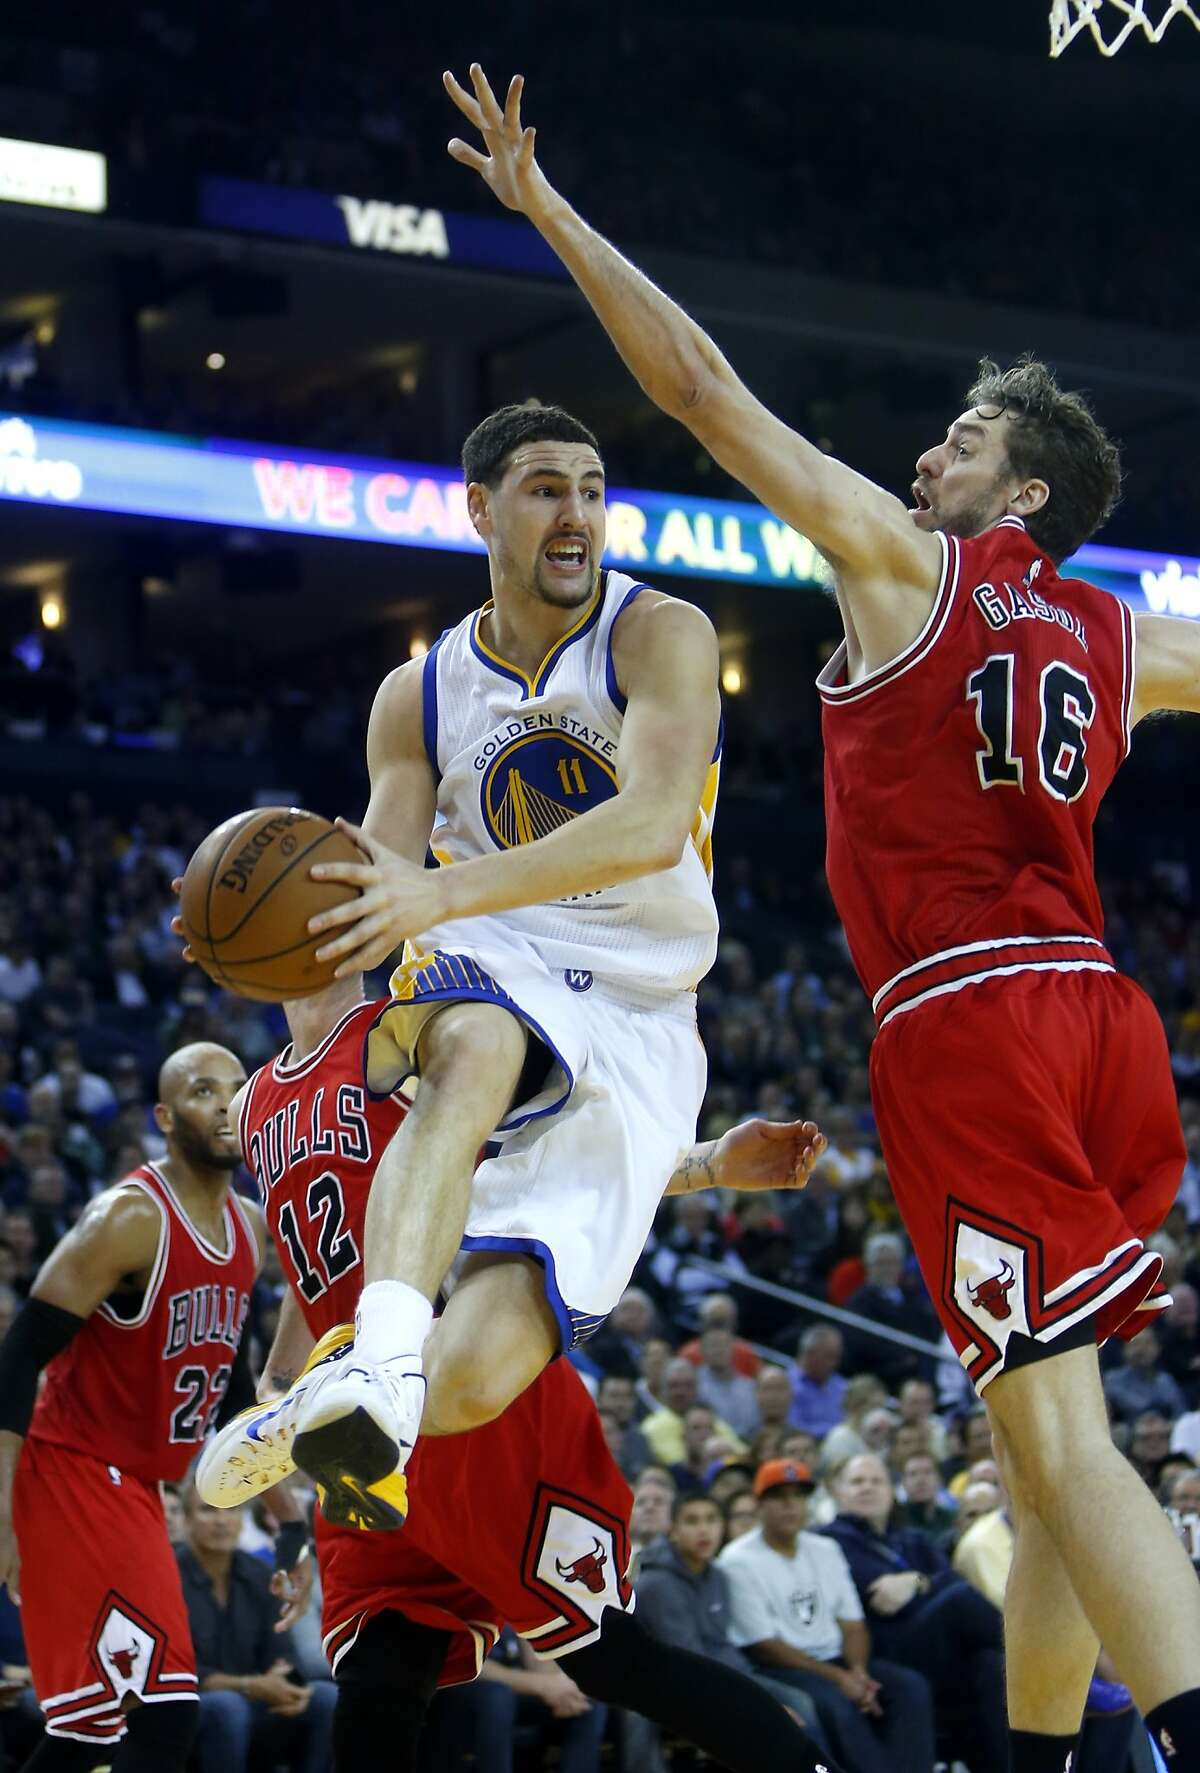 The Golden State Warriors' Klay Thompson drives against Chicago Bulls' Pau gasol in 2nd quarter during NBA game at Oracle Arena in Oakland, Calif., on Tuesday, January 27, 2015.